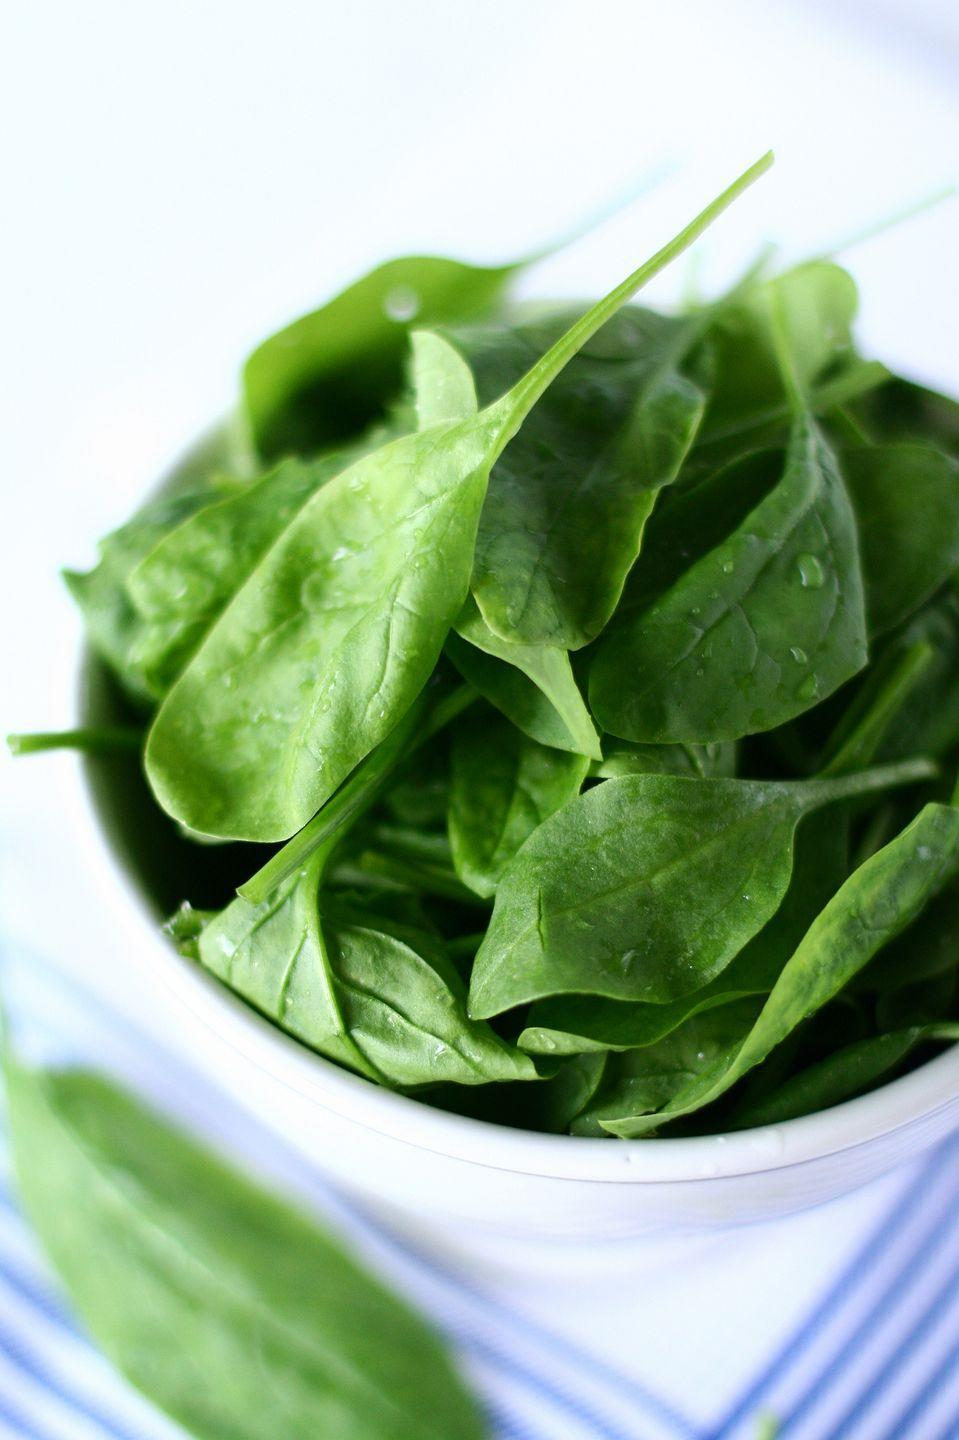 "<p><a href=""https://www.goodhousekeeping.com/health/diet-nutrition/a19500845/spinach-nutrition/"" rel=""nofollow noopener"" target=""_blank"" data-ylk=""slk:Adding more leafy greens"" class=""link rapid-noclick-resp"">Adding more leafy greens</a> to your plate can help lower cholesterol by promoting your body production of nitric oxide (NO), which helps dilate blood vessels and reduce atherosclerosis. </p>"